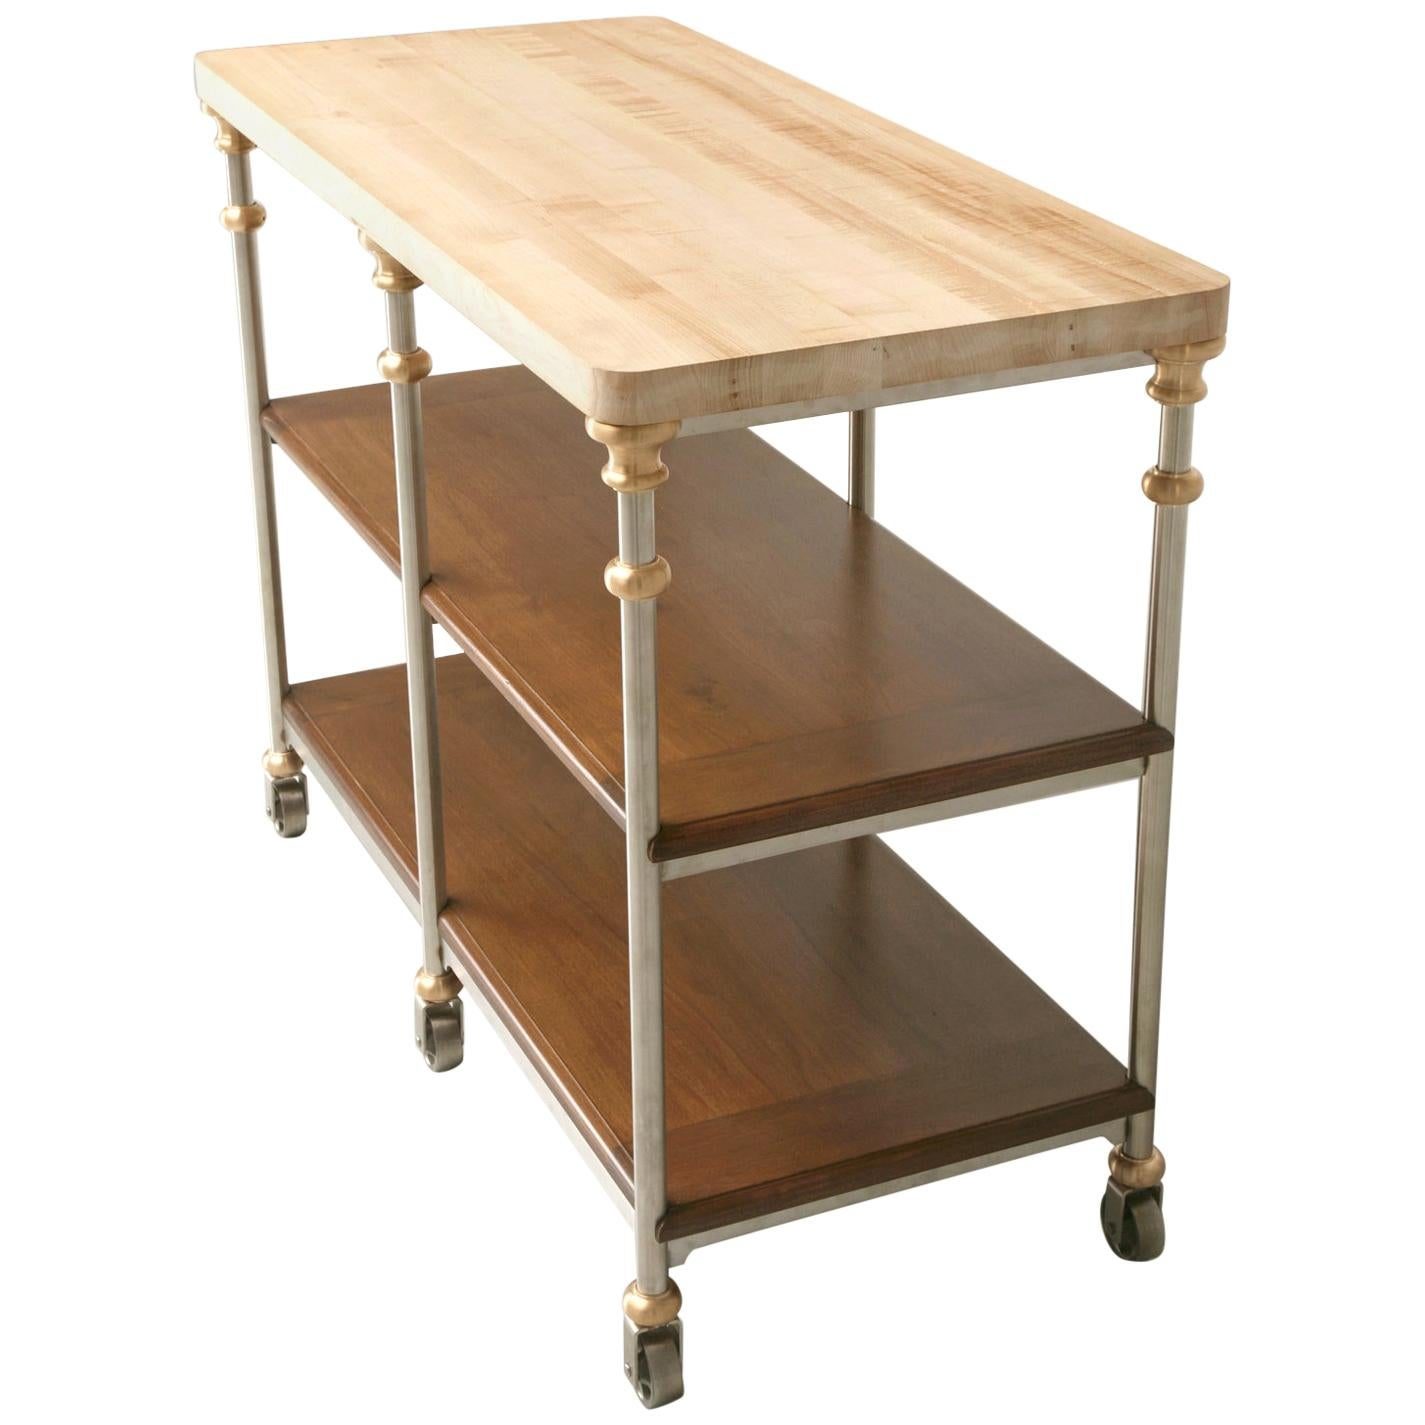 Butcher Block Industrial Inspired Stainless Steel and Bronze Kitchen Island